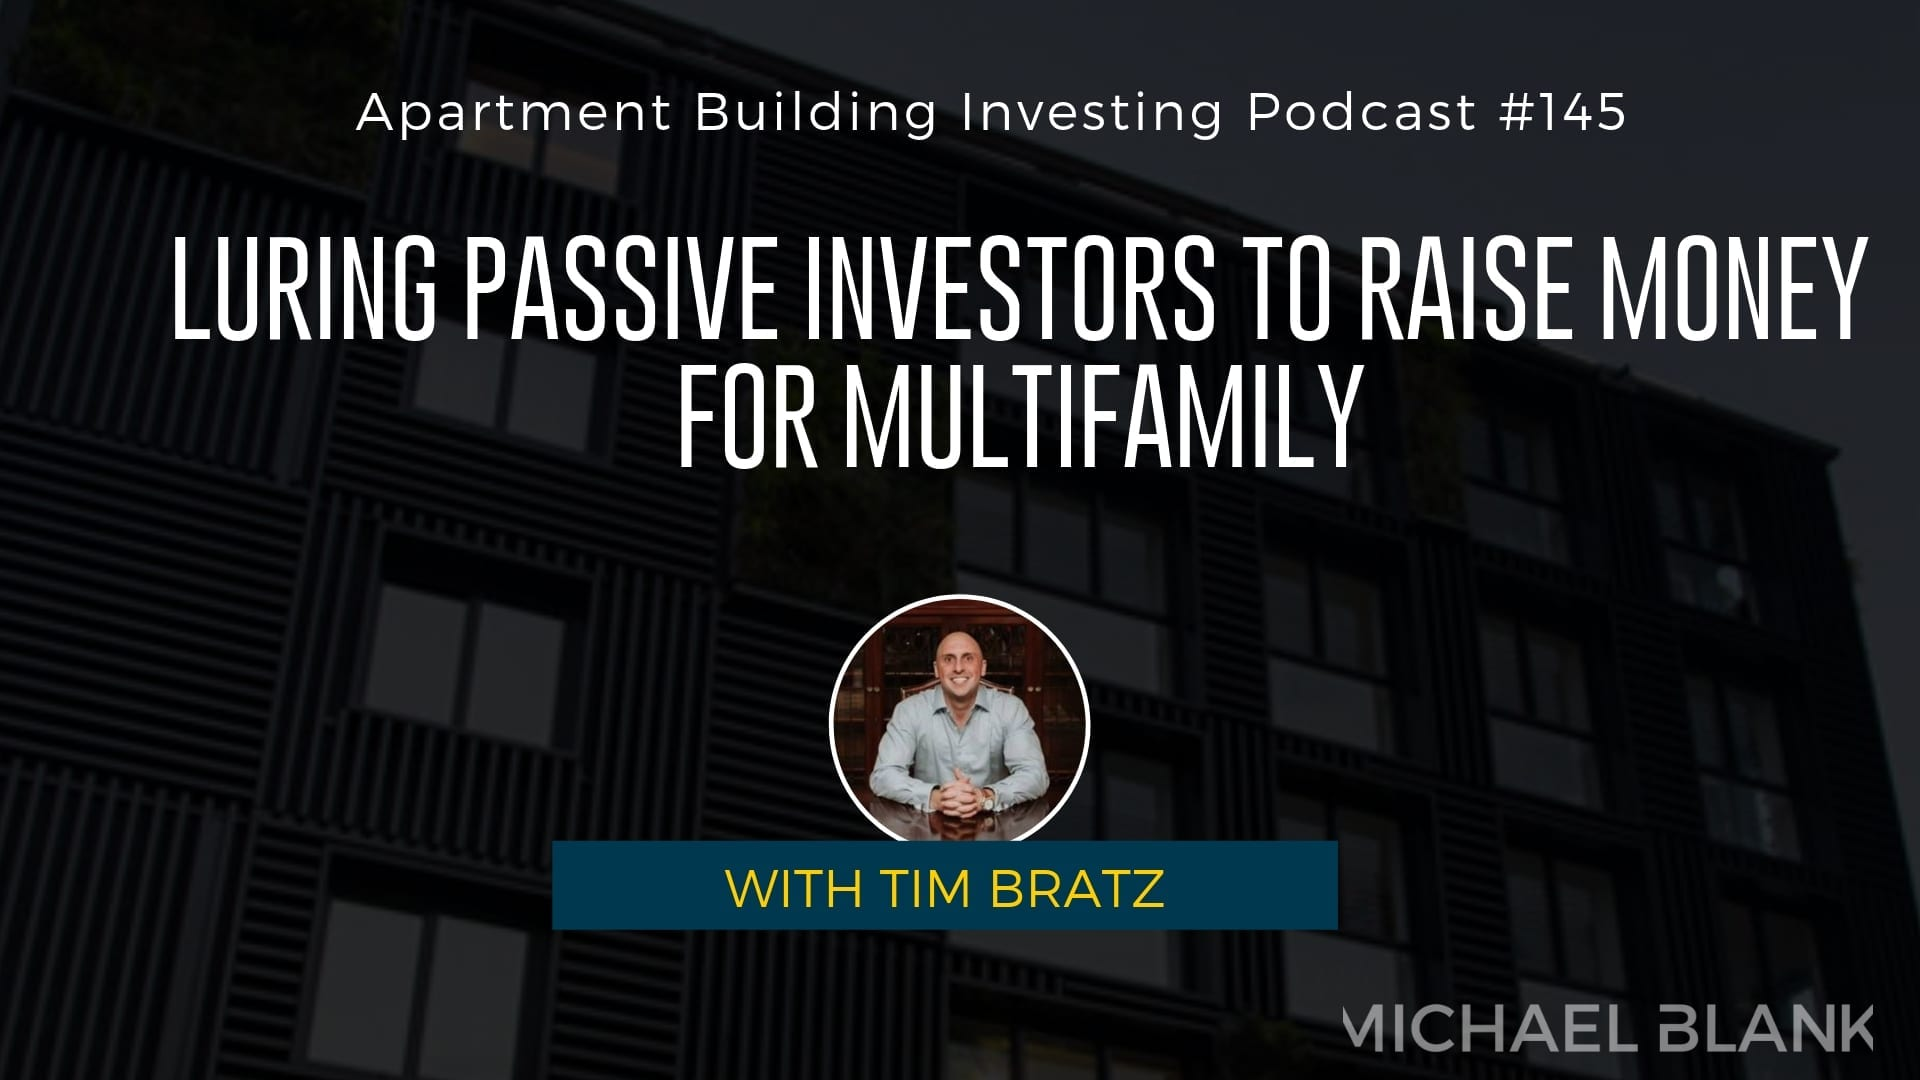 MB 145: Luring Passive Investors to Raise Money for Multifamily – With Tim Bratz